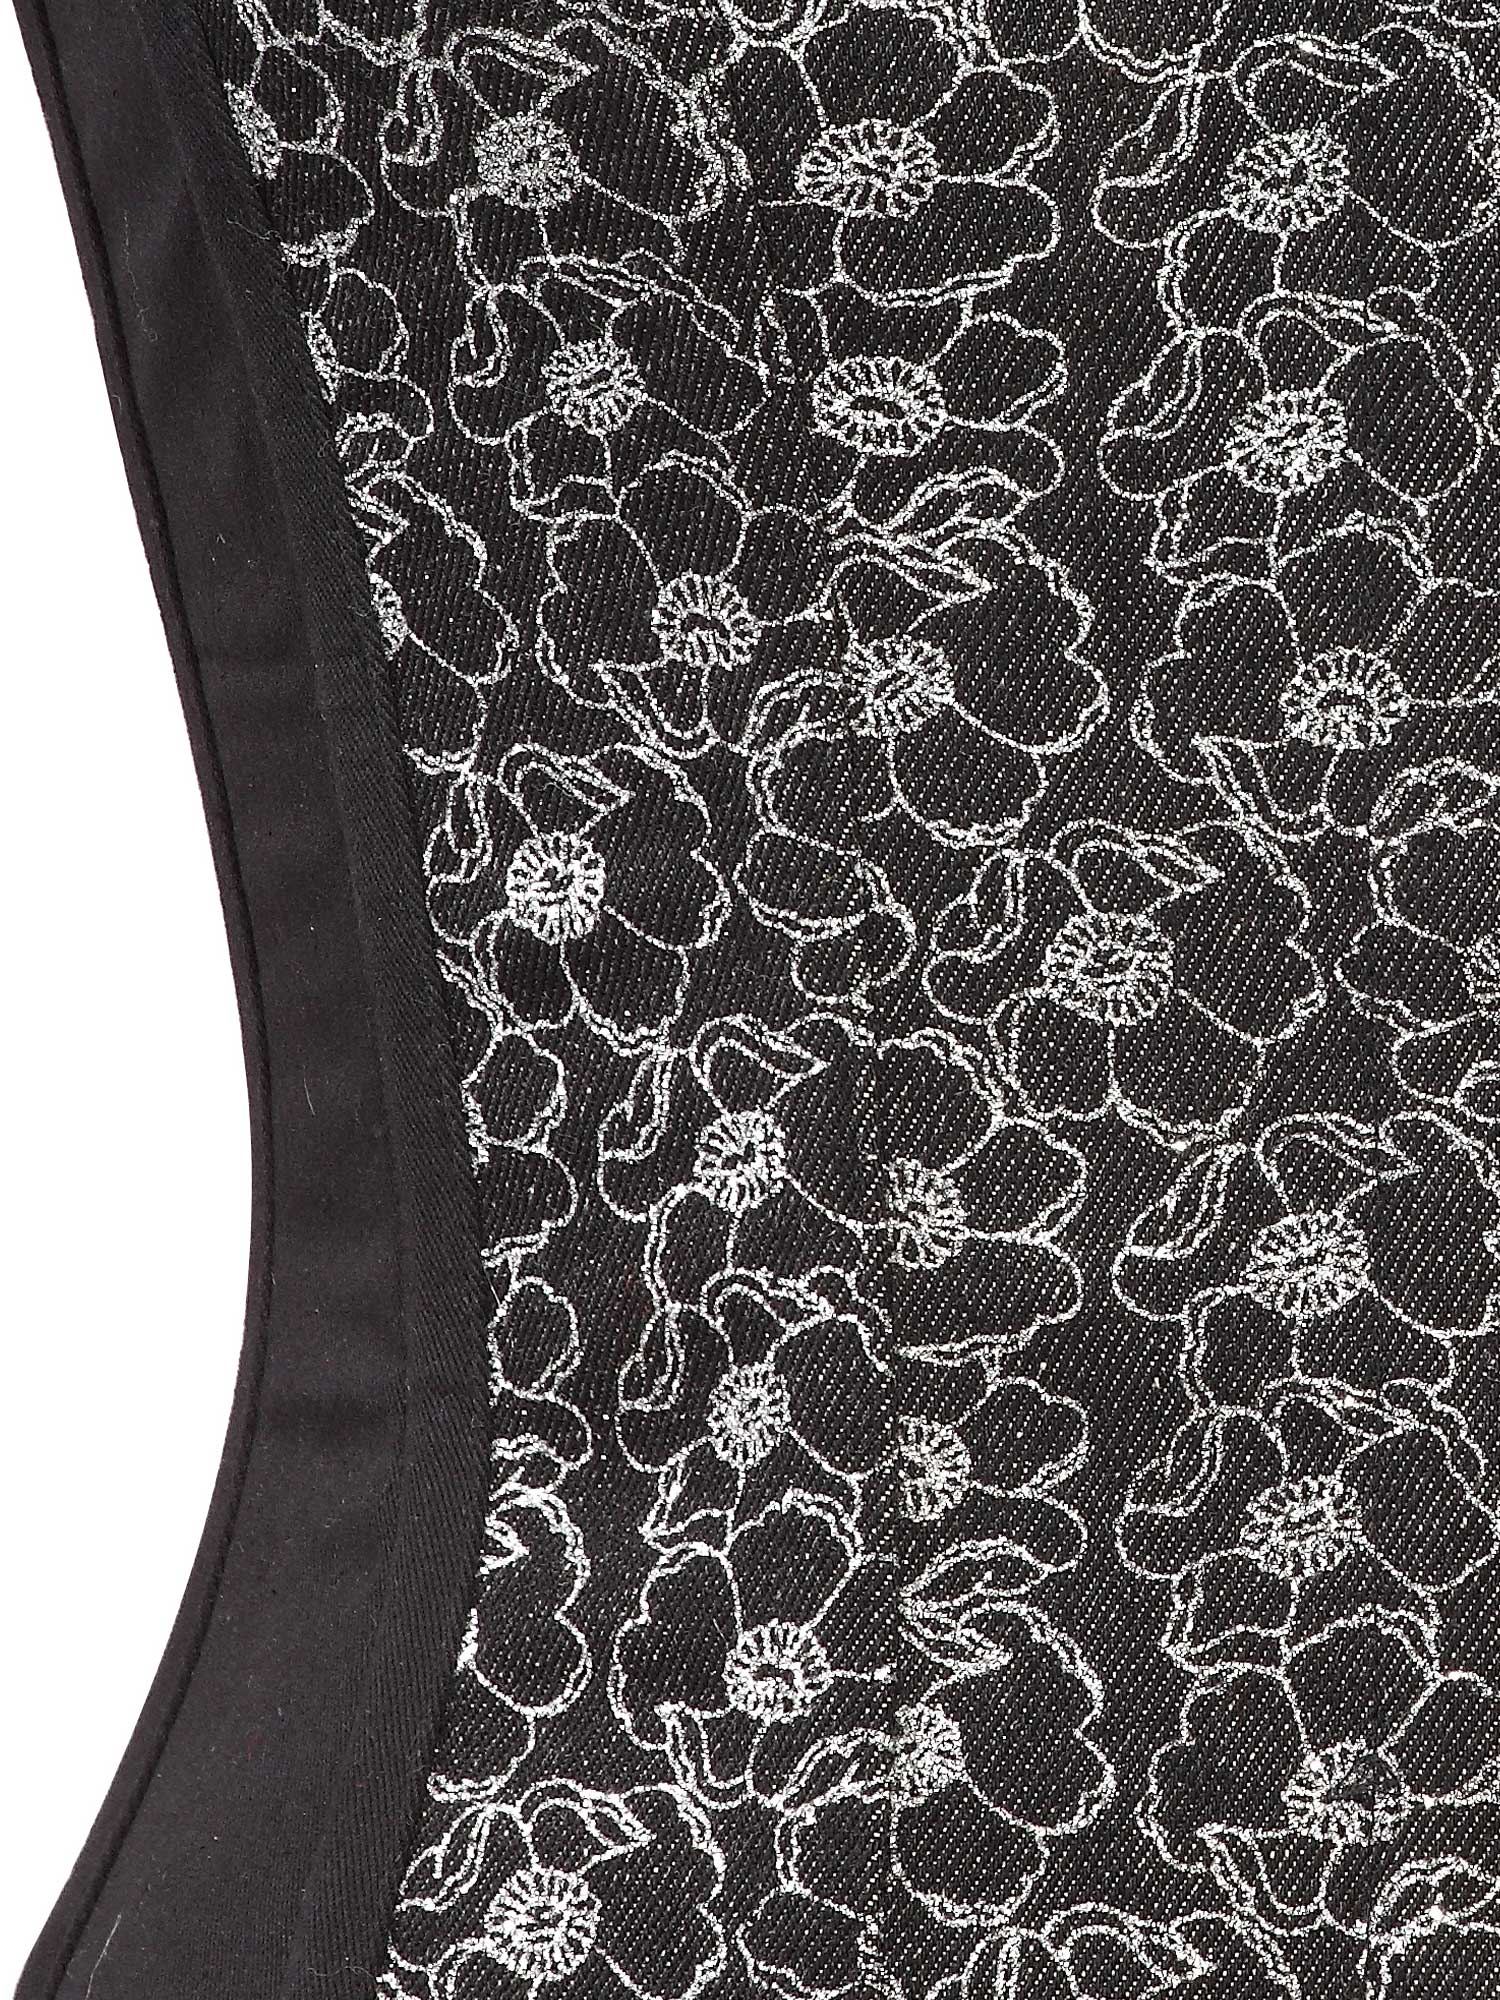 black_denim_with_sparkle_embossing_fabric_corset_bustiers_and_corsets_2.jpg